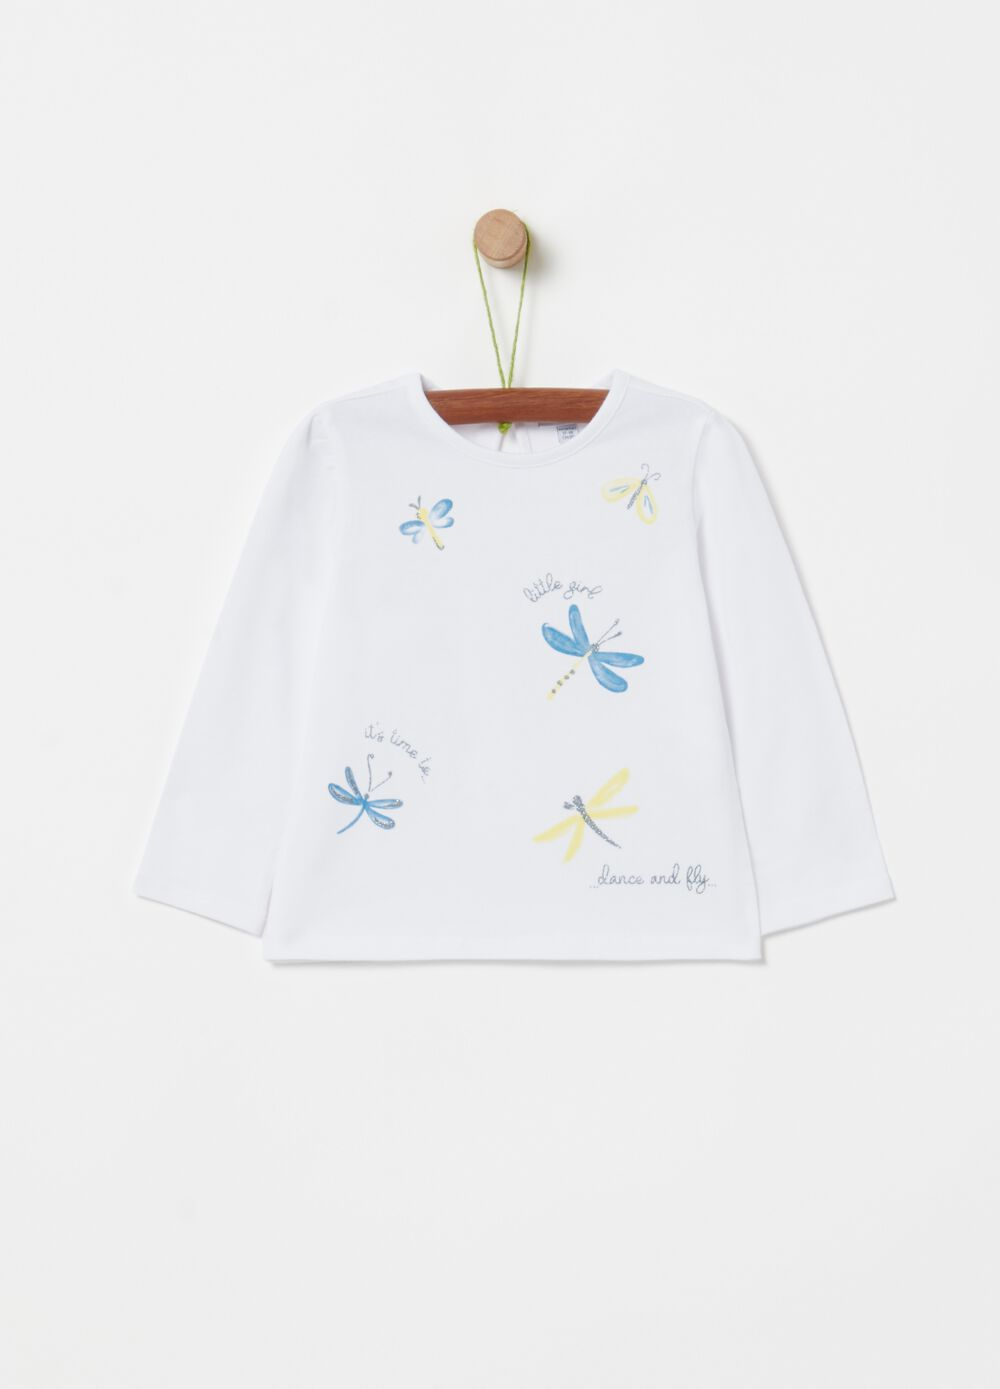 T-shirt with dragonfly print